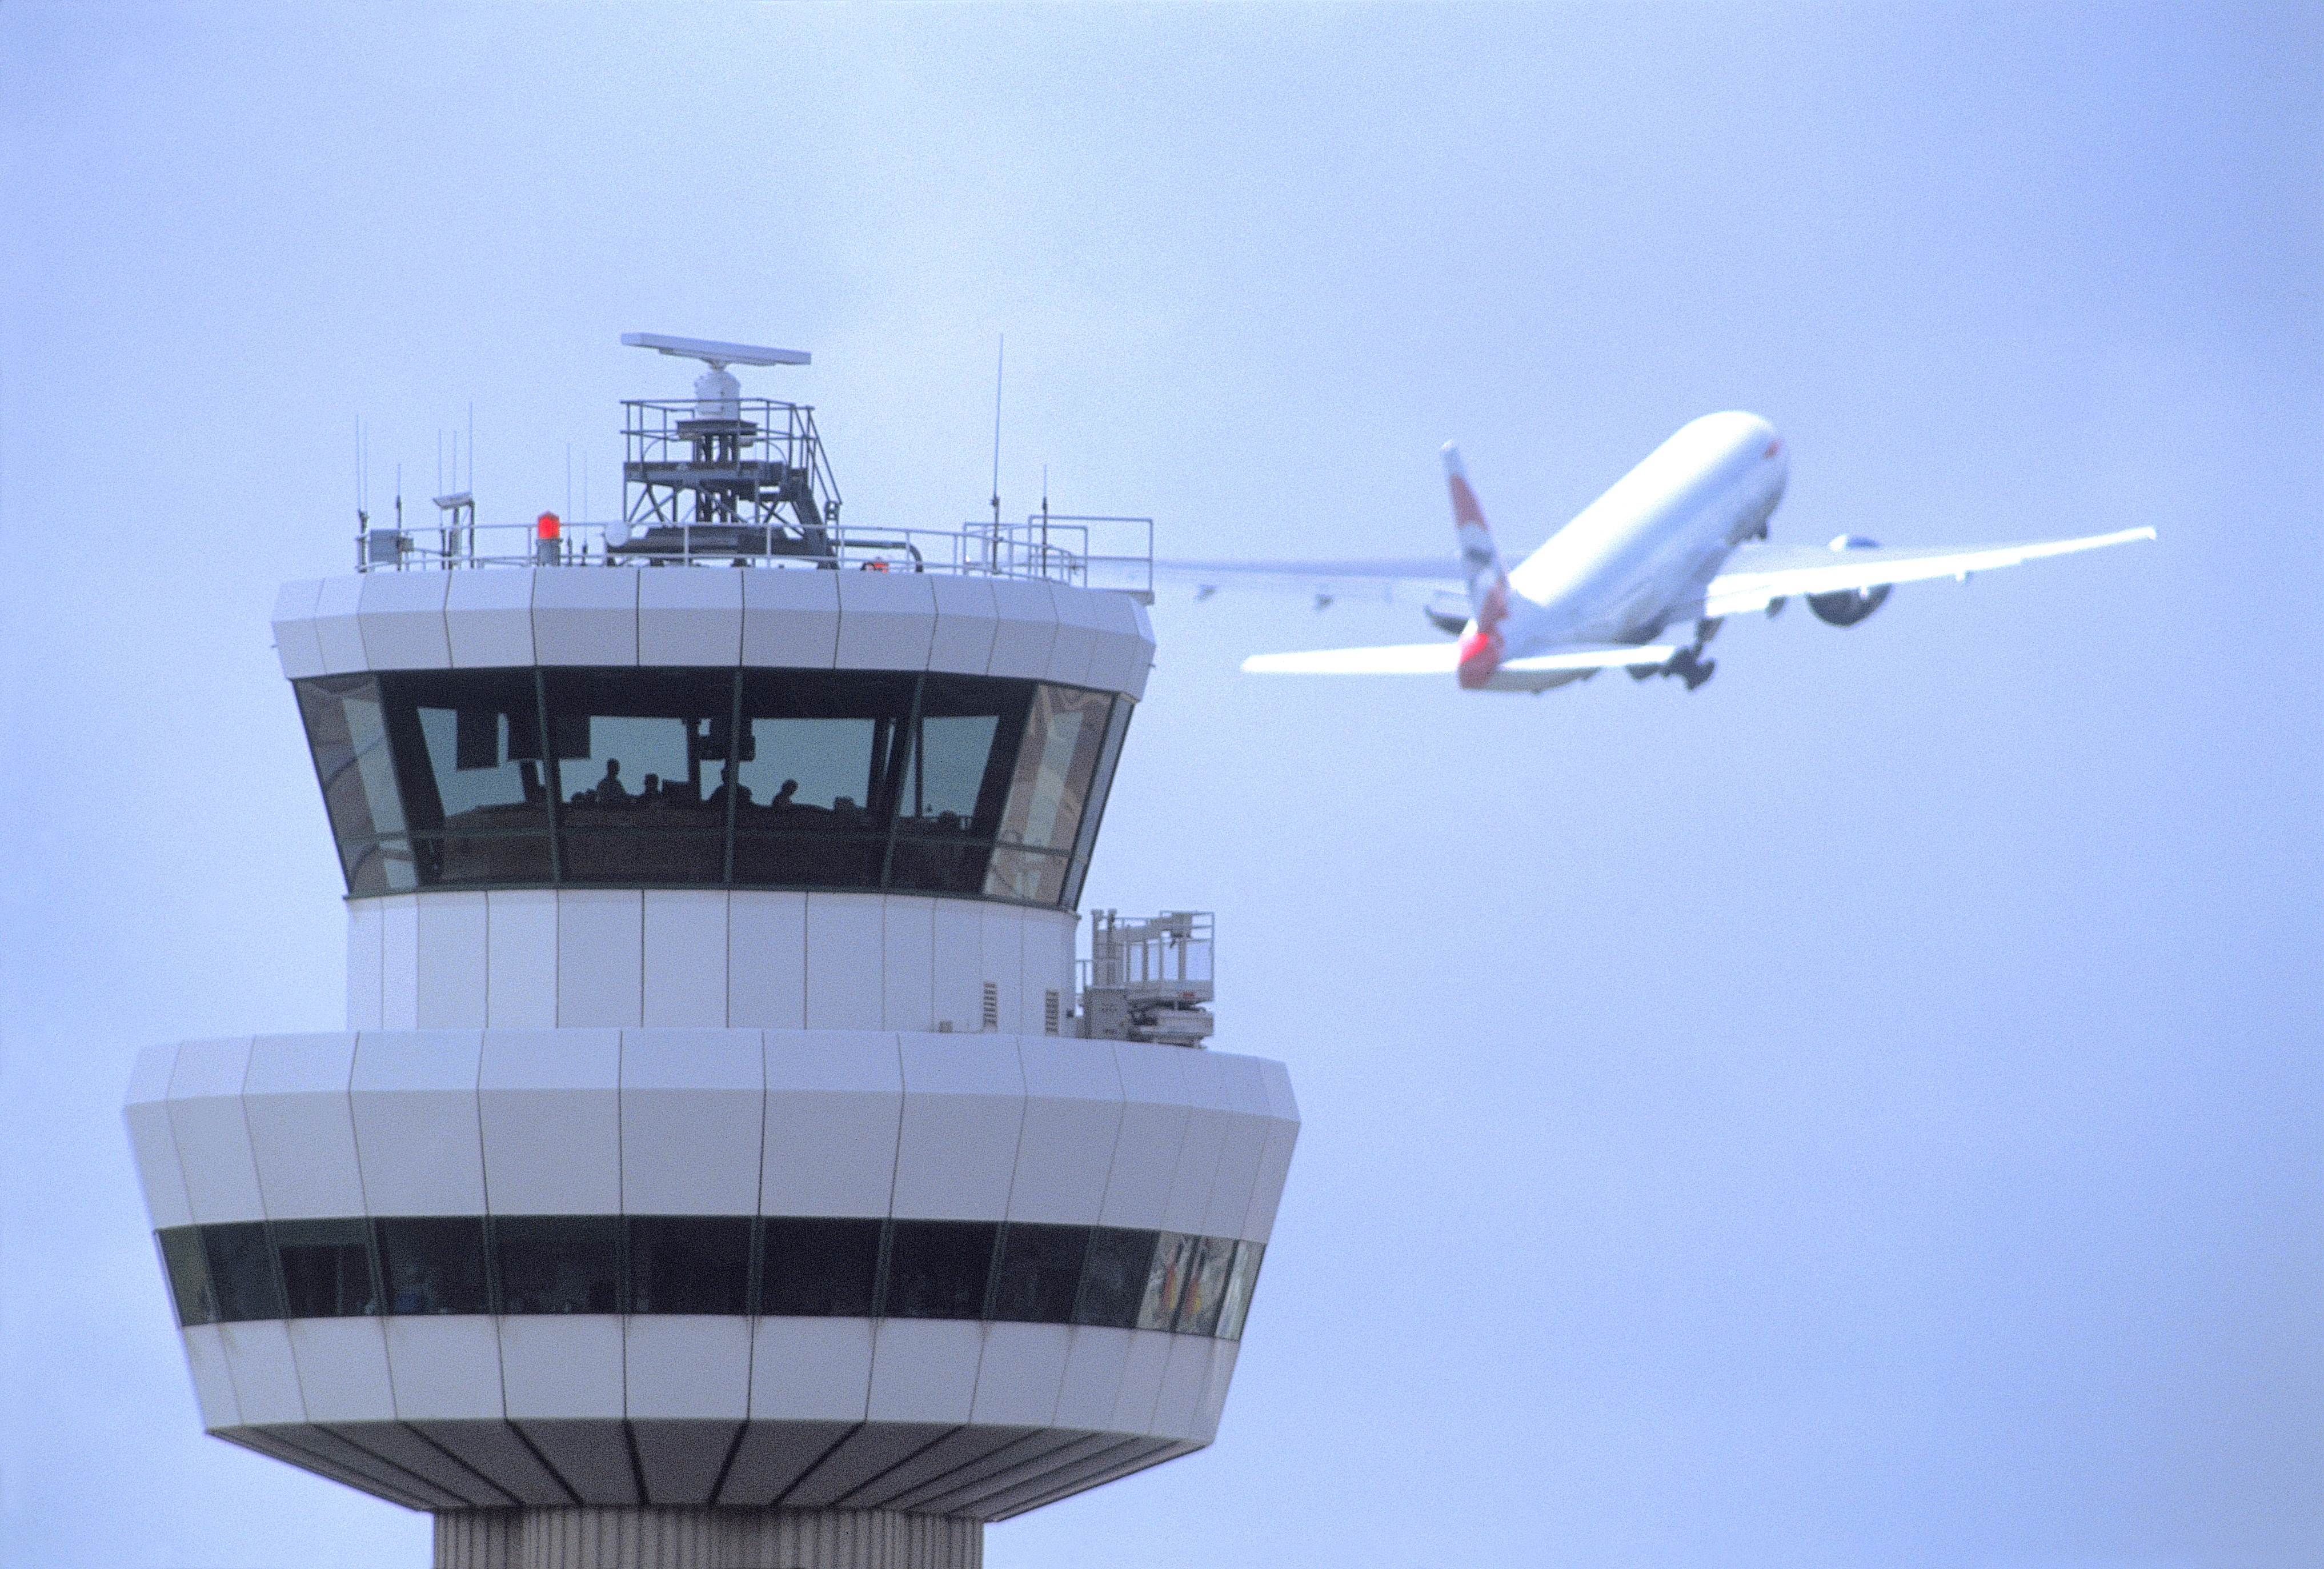 control-tower-with-aircraft-11111